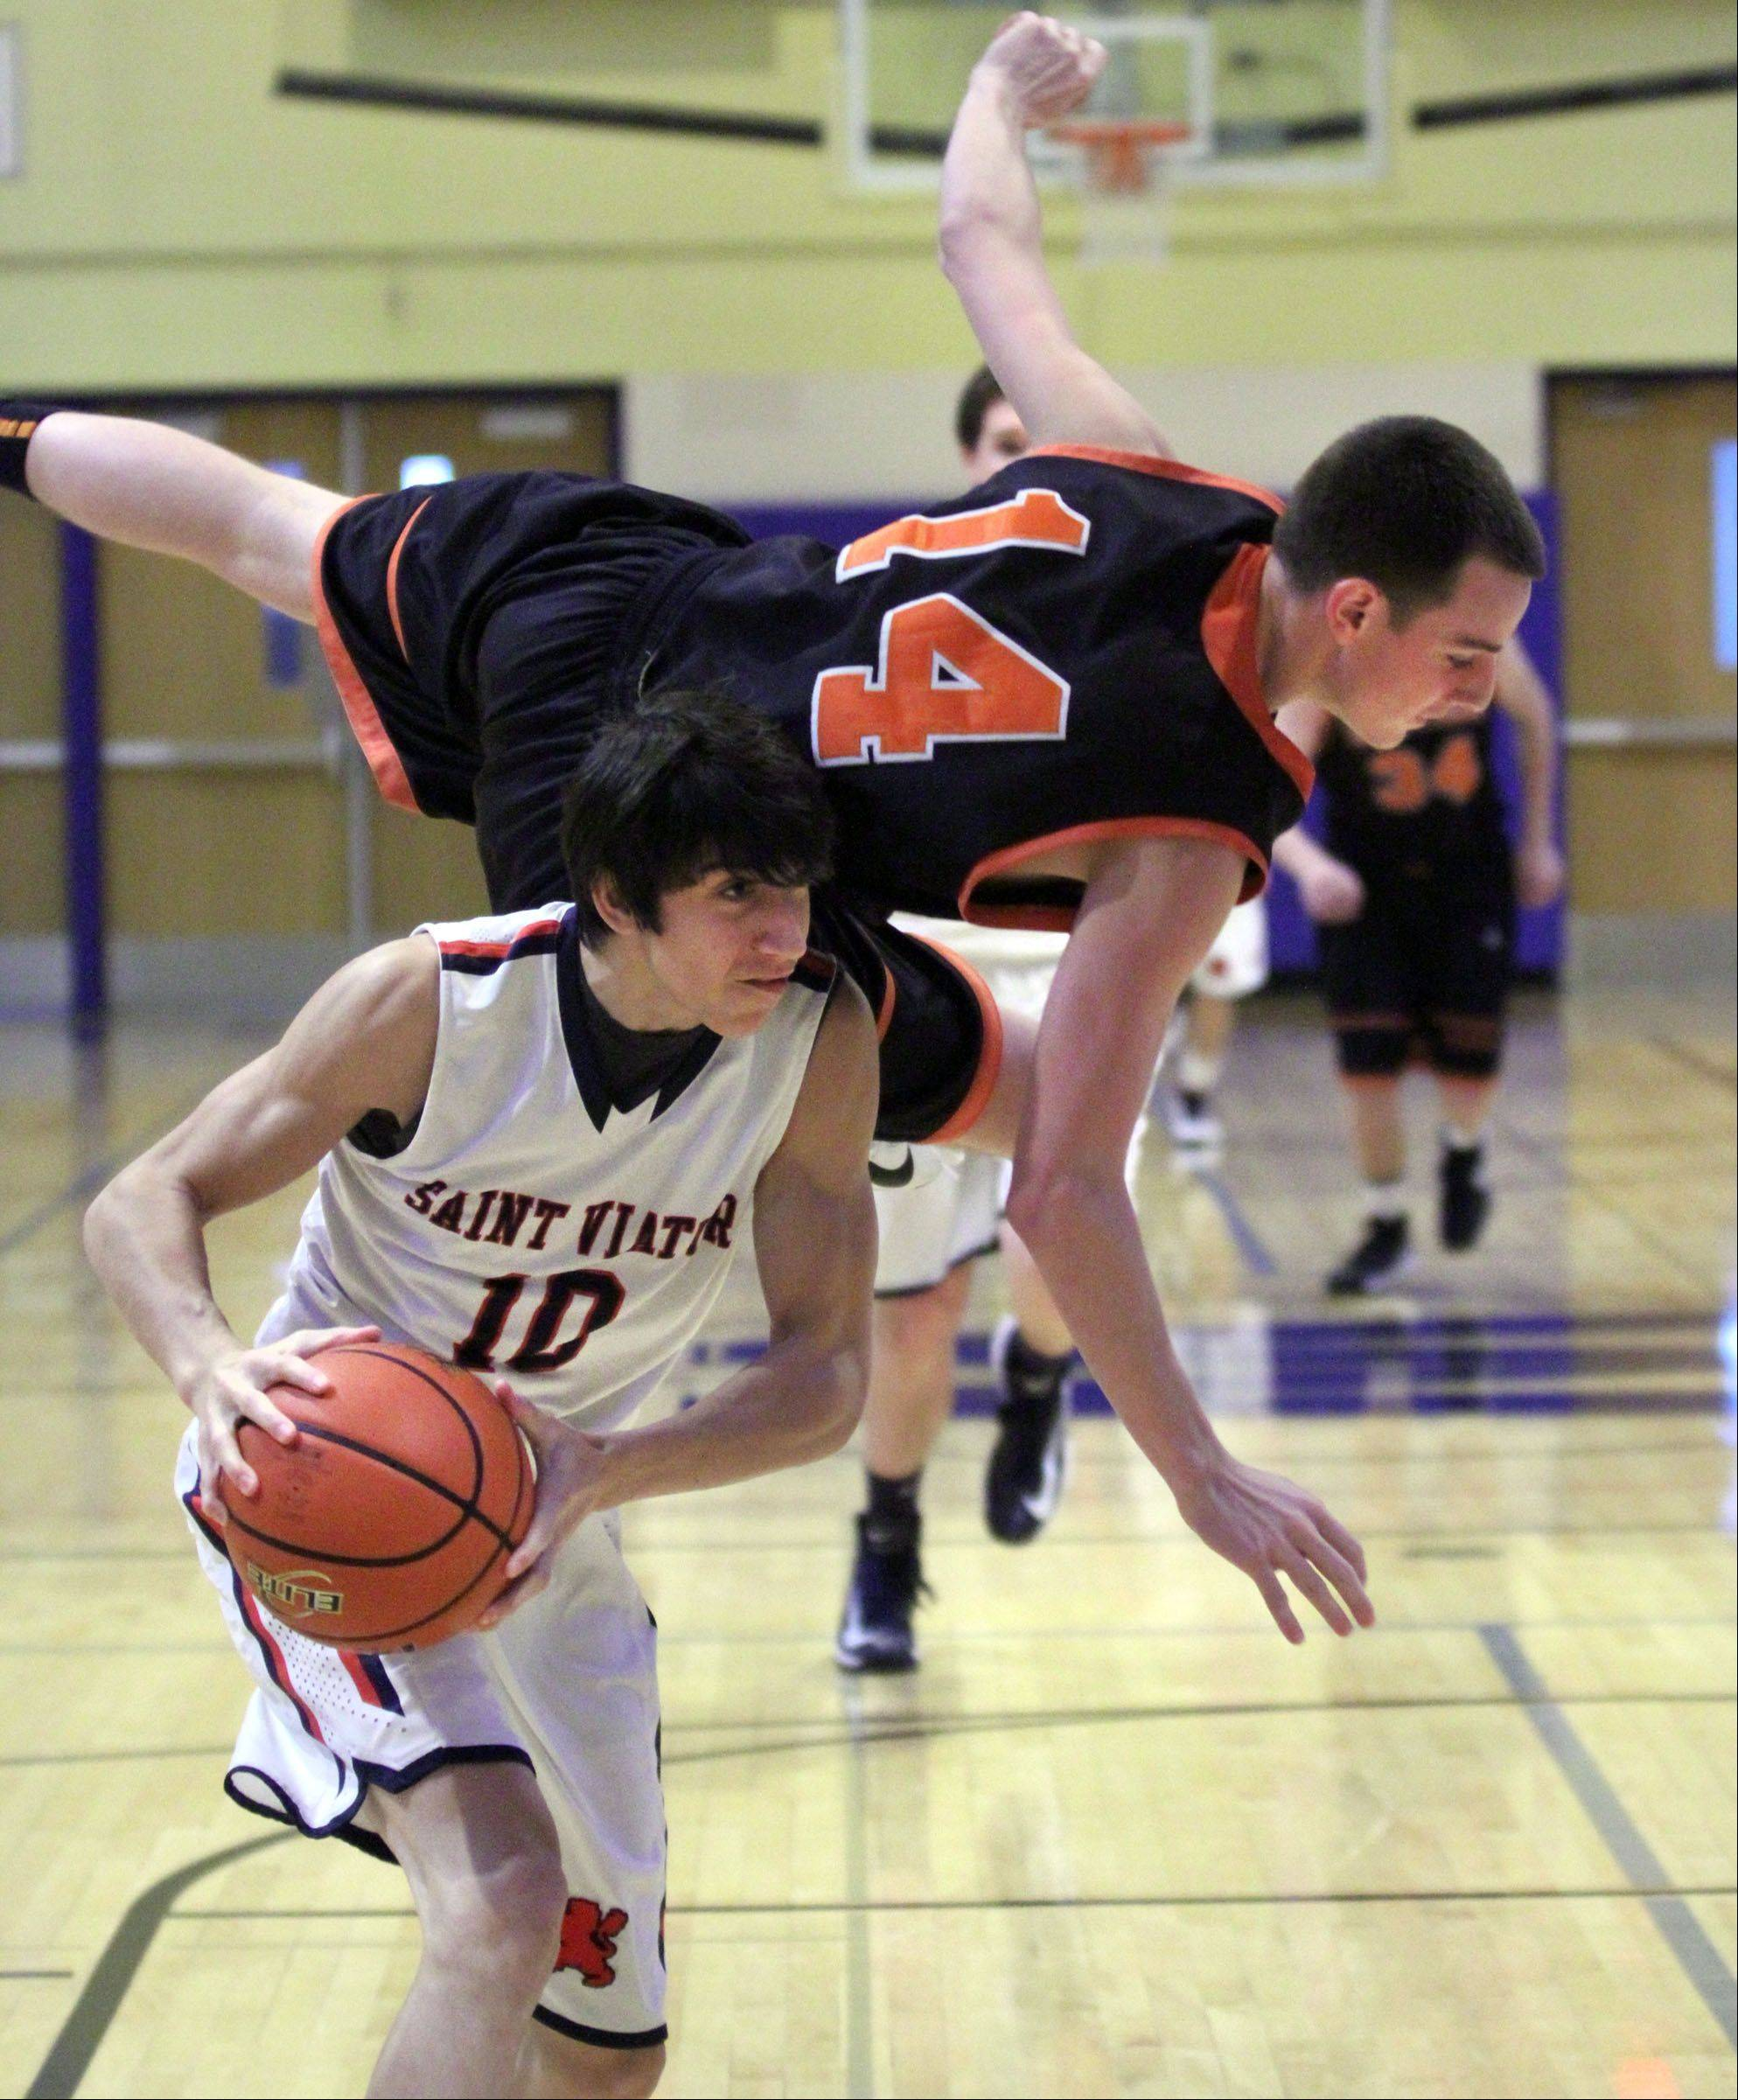 While trying to block a shot Libertyville defender, Drew Cayce falls over the back of St. Viator�s Robert Grant at the 35th annual Hardwood Classic in Wheeling on Wednesday.